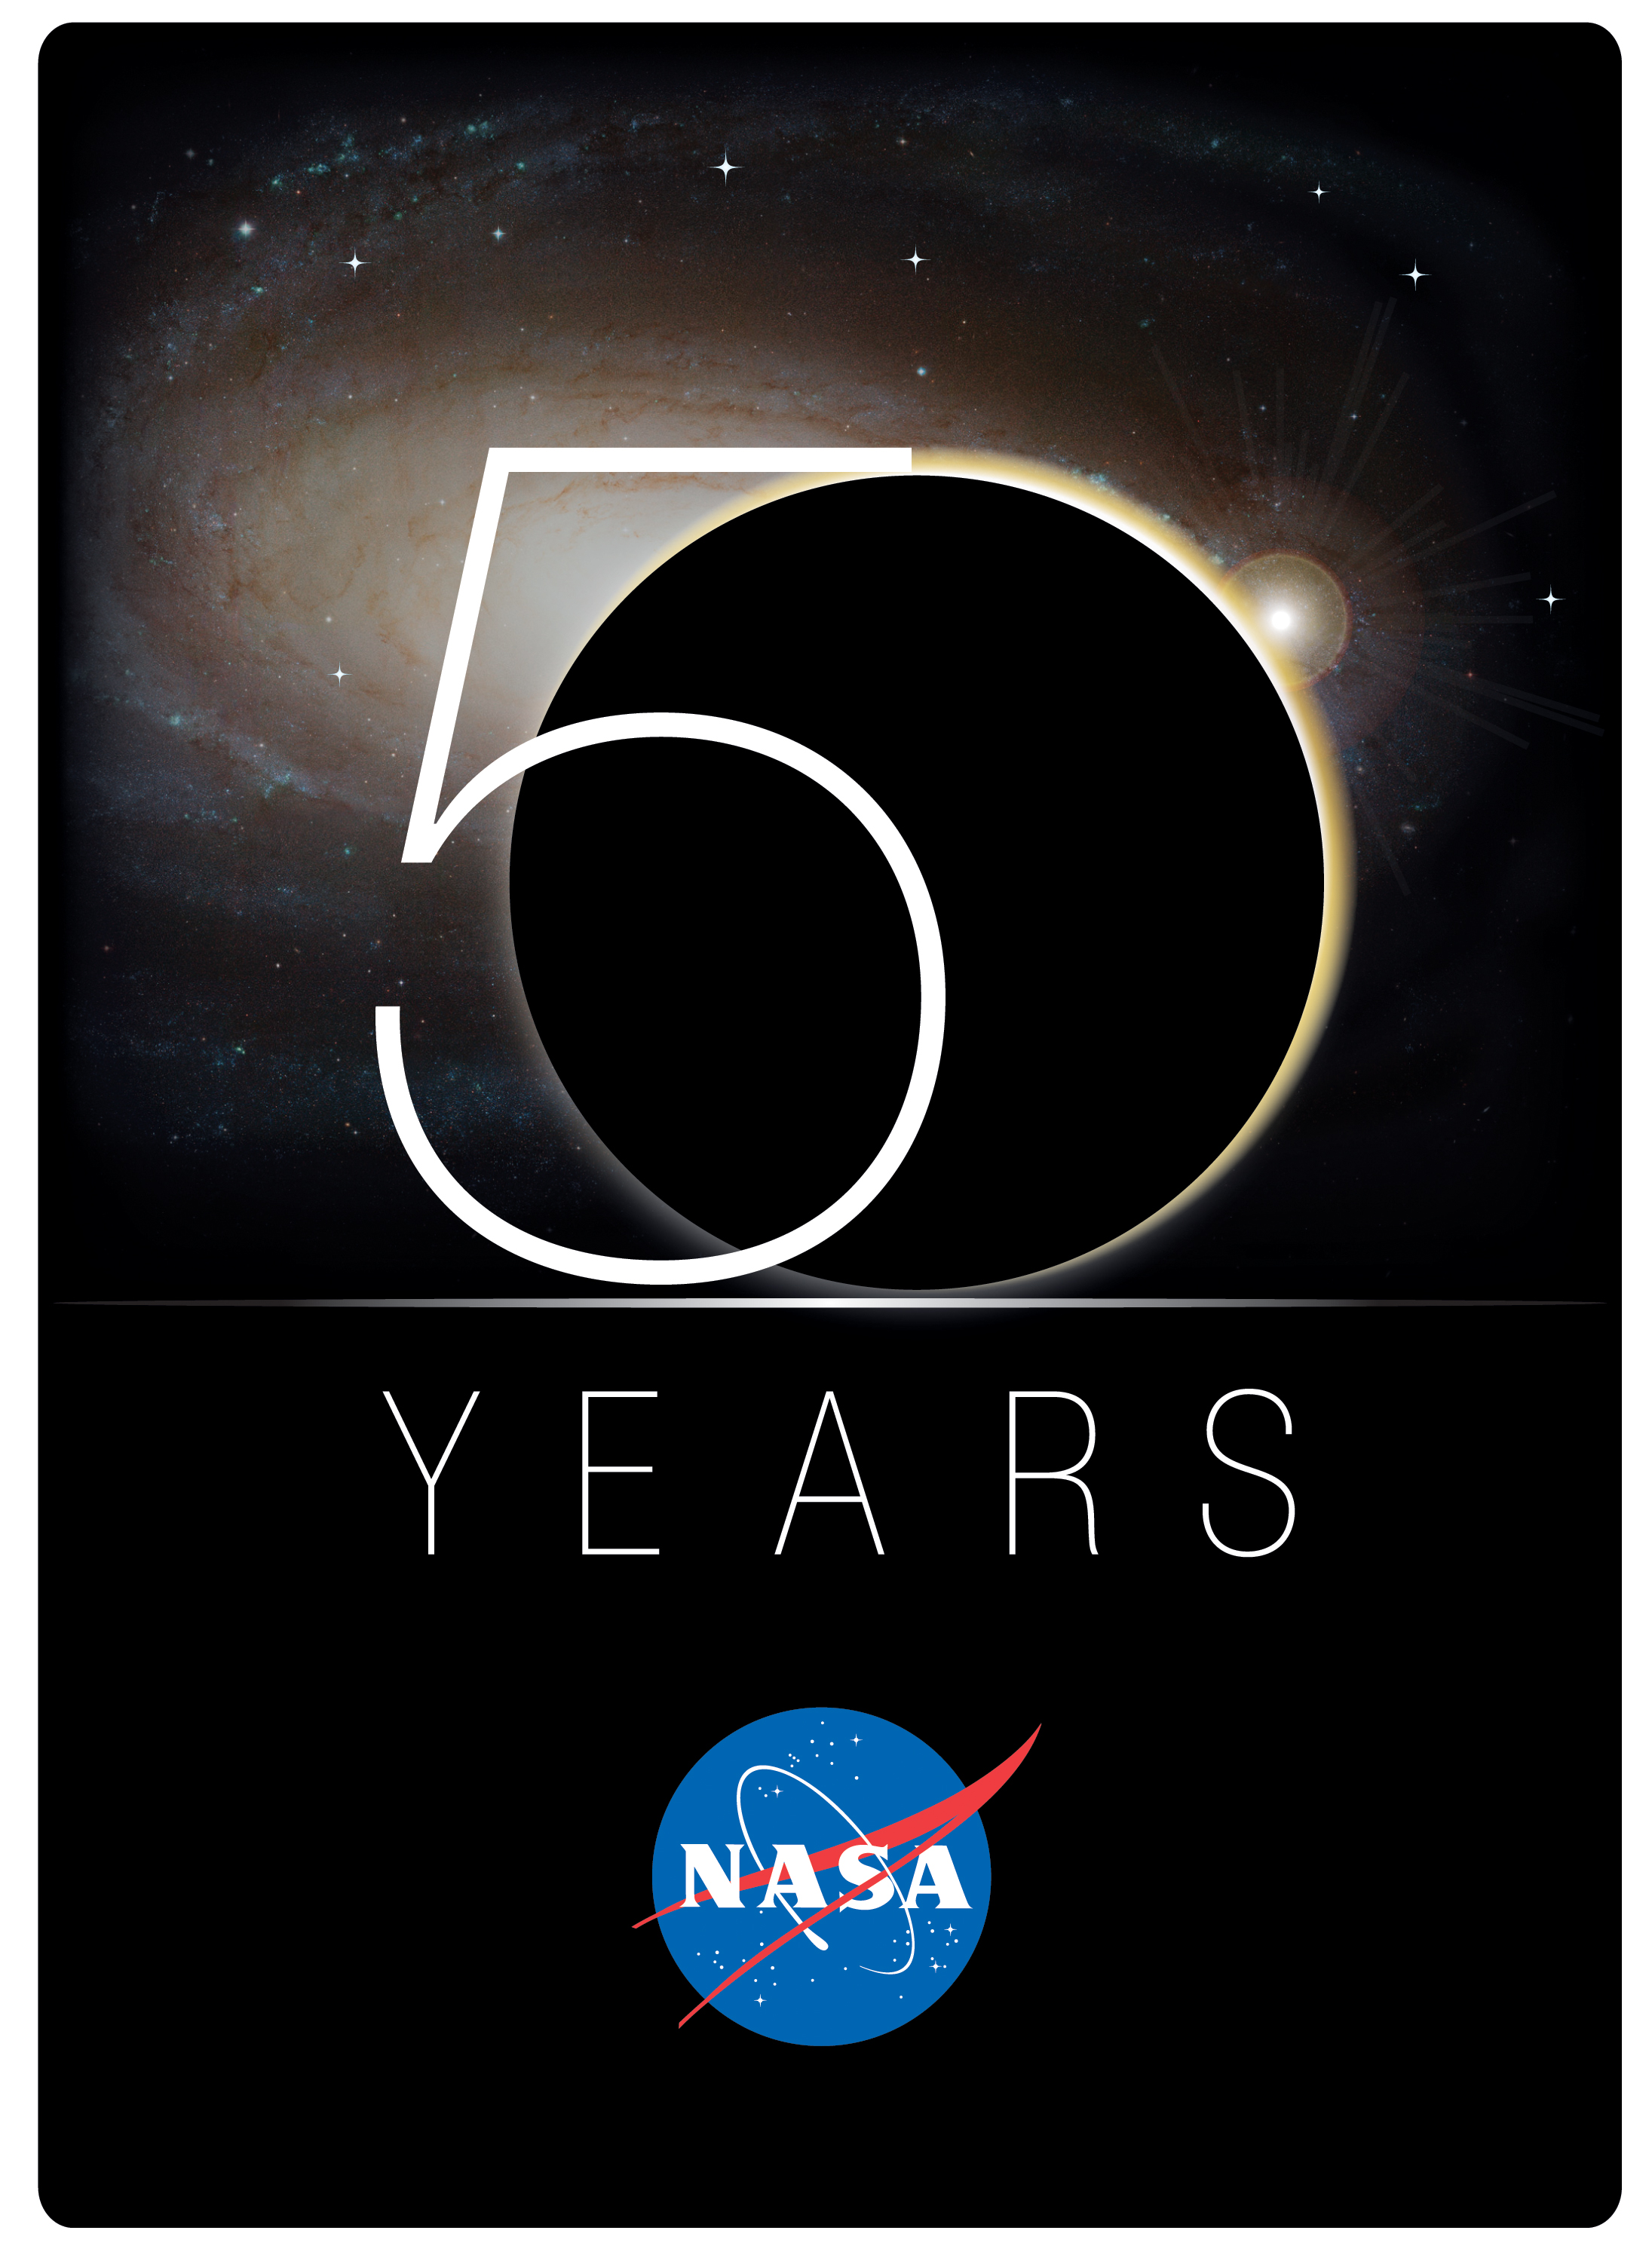 Nasa nasa unveils 50th anniversary logo view full resolution image 19 mb altavistaventures Image collections